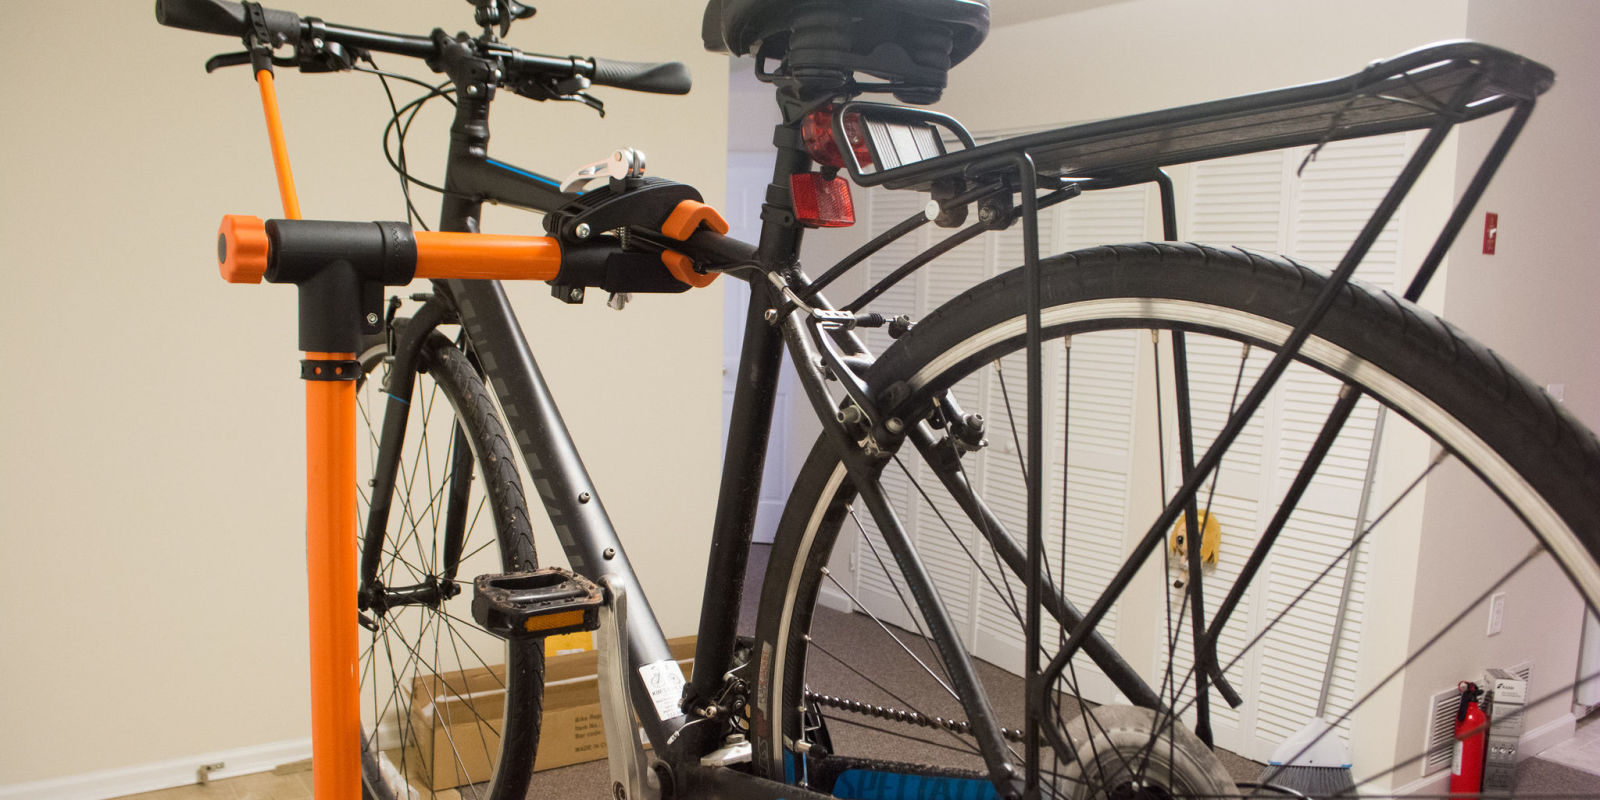 How to prepare your bicycle for spring diy bike repair for How to make a bike stand out of wood